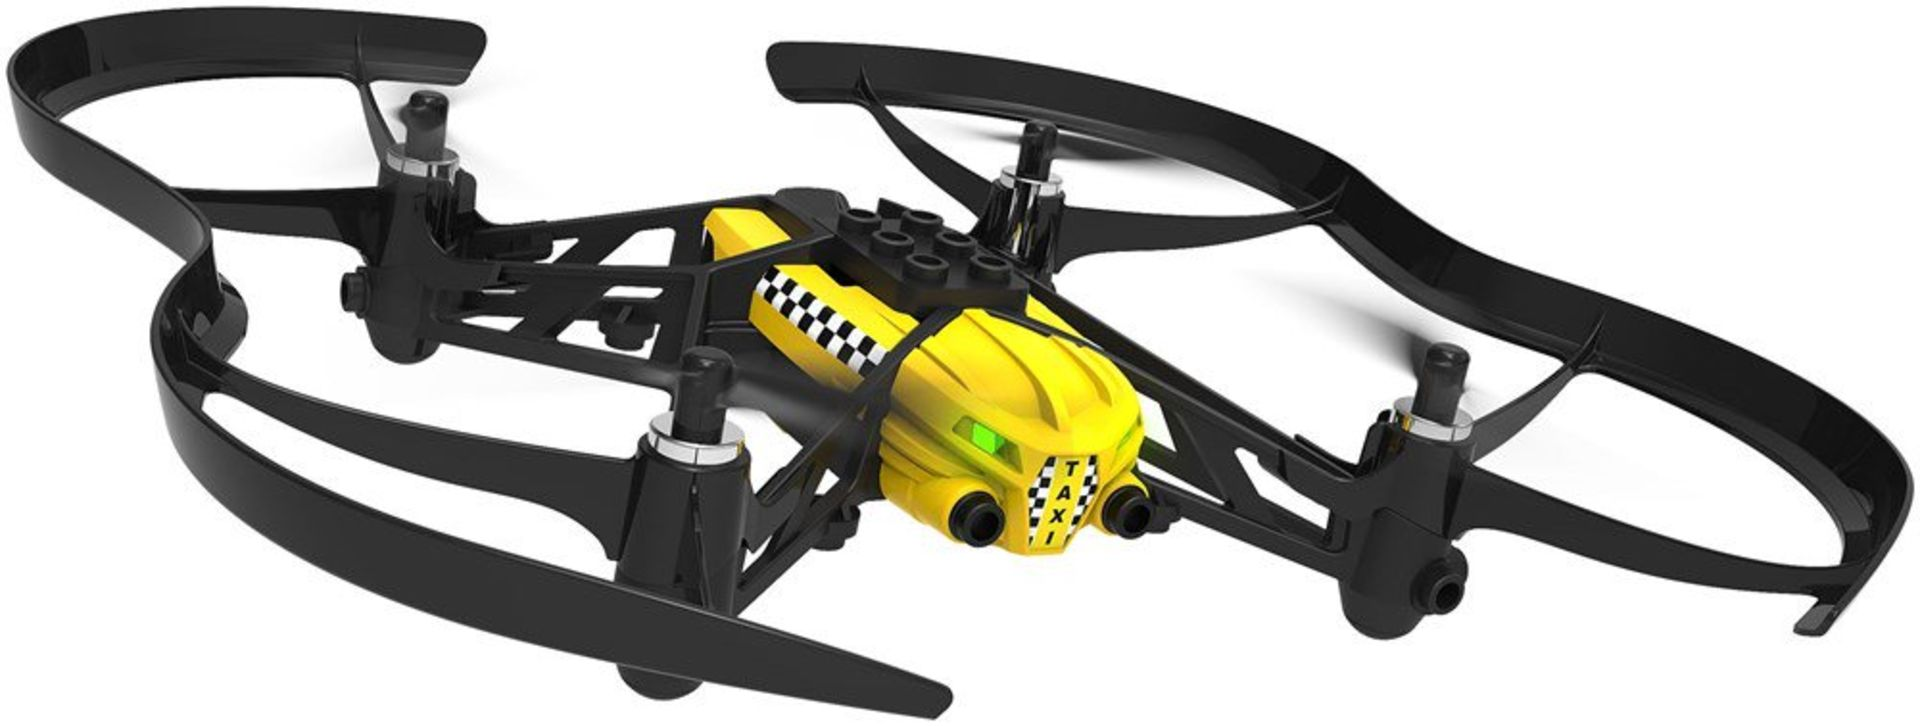 Lot 12037 - V Brand New Parrot Minidrone Travis Airborn Smartphone Controlled Cargo Drone - 360 Degree